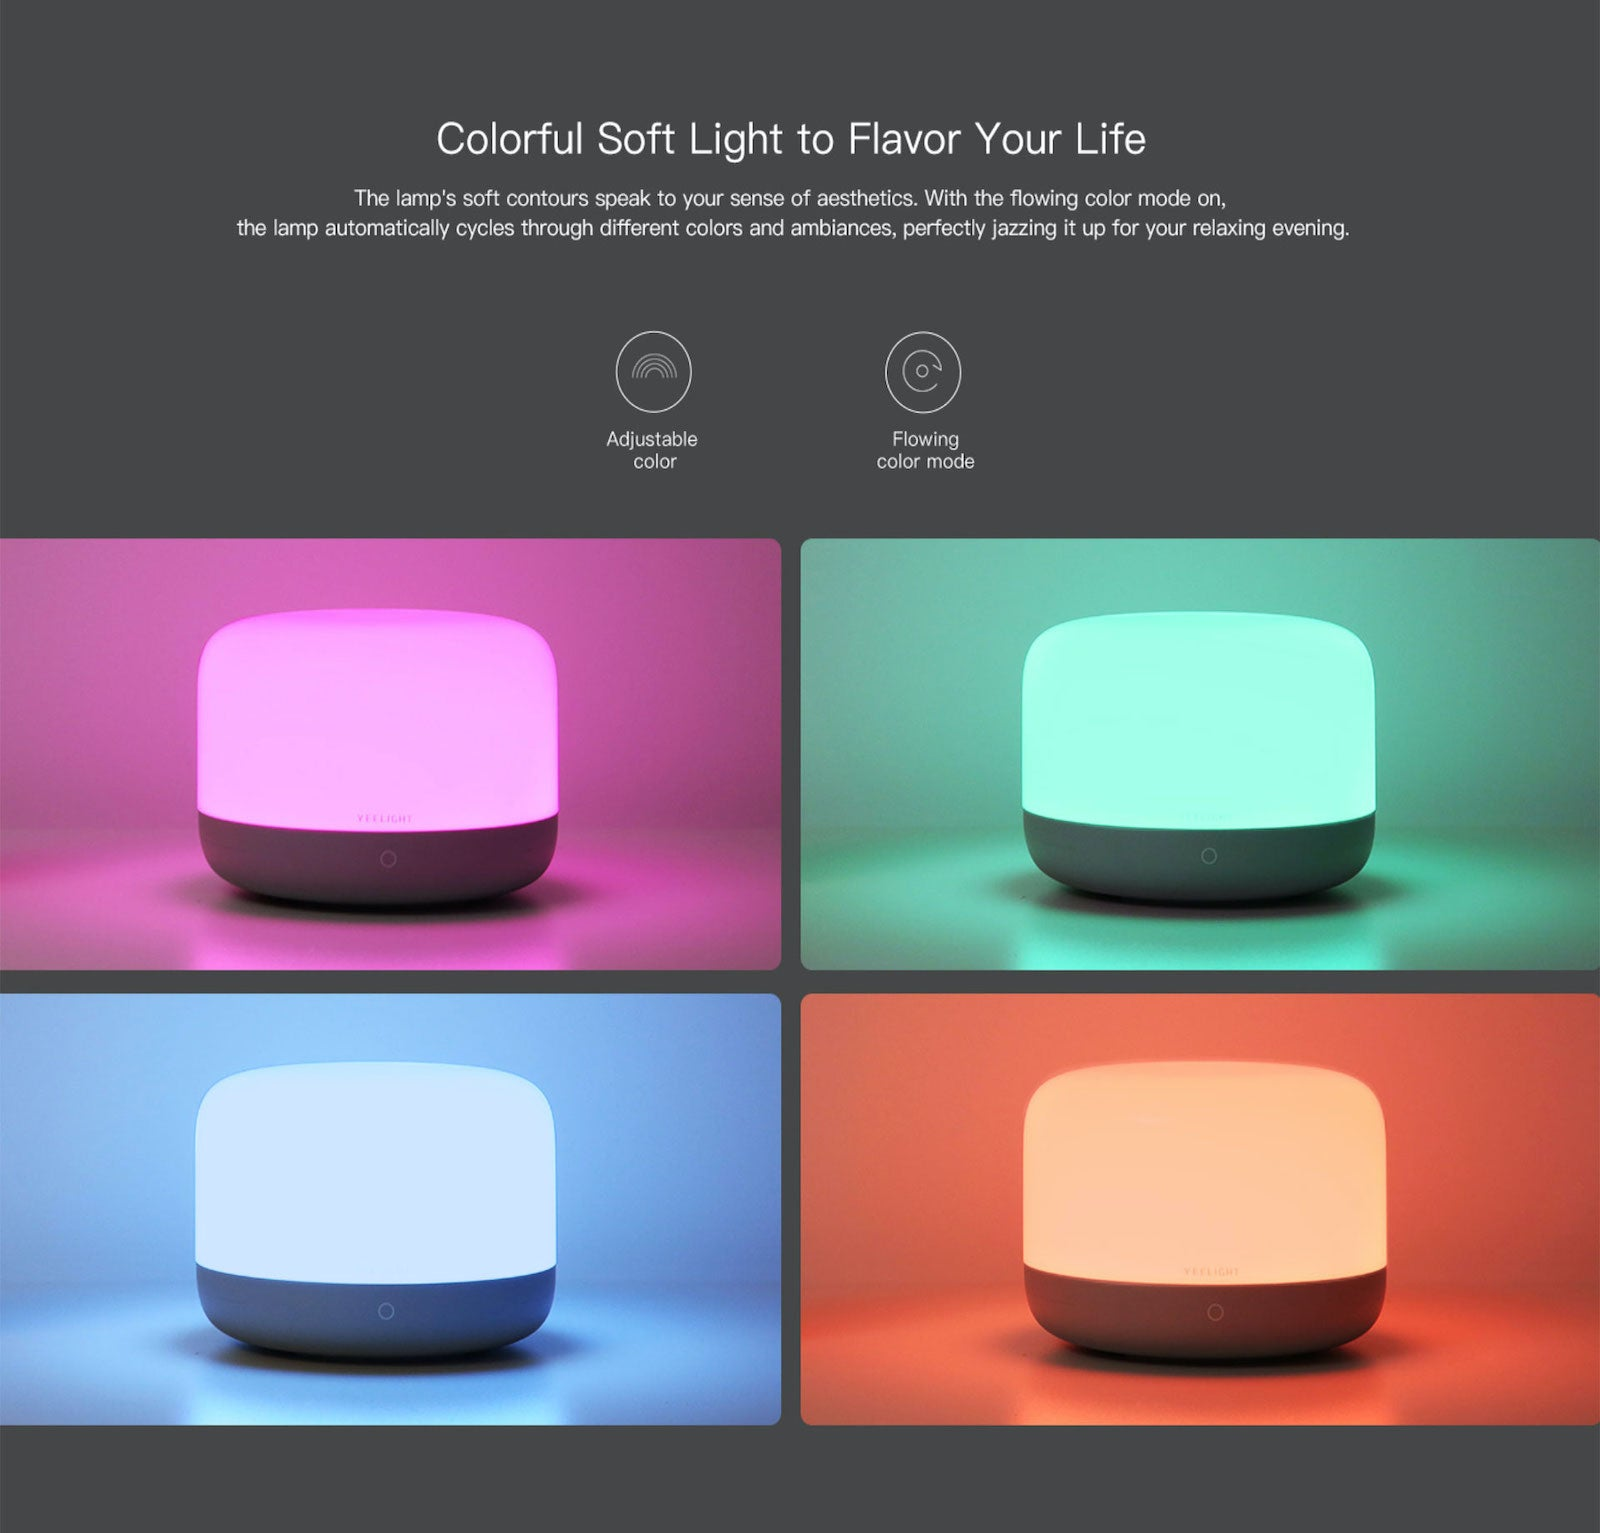 Yeelight LED Bedside Lamp Smart Table Light Homekit Google Voice Control Alexa